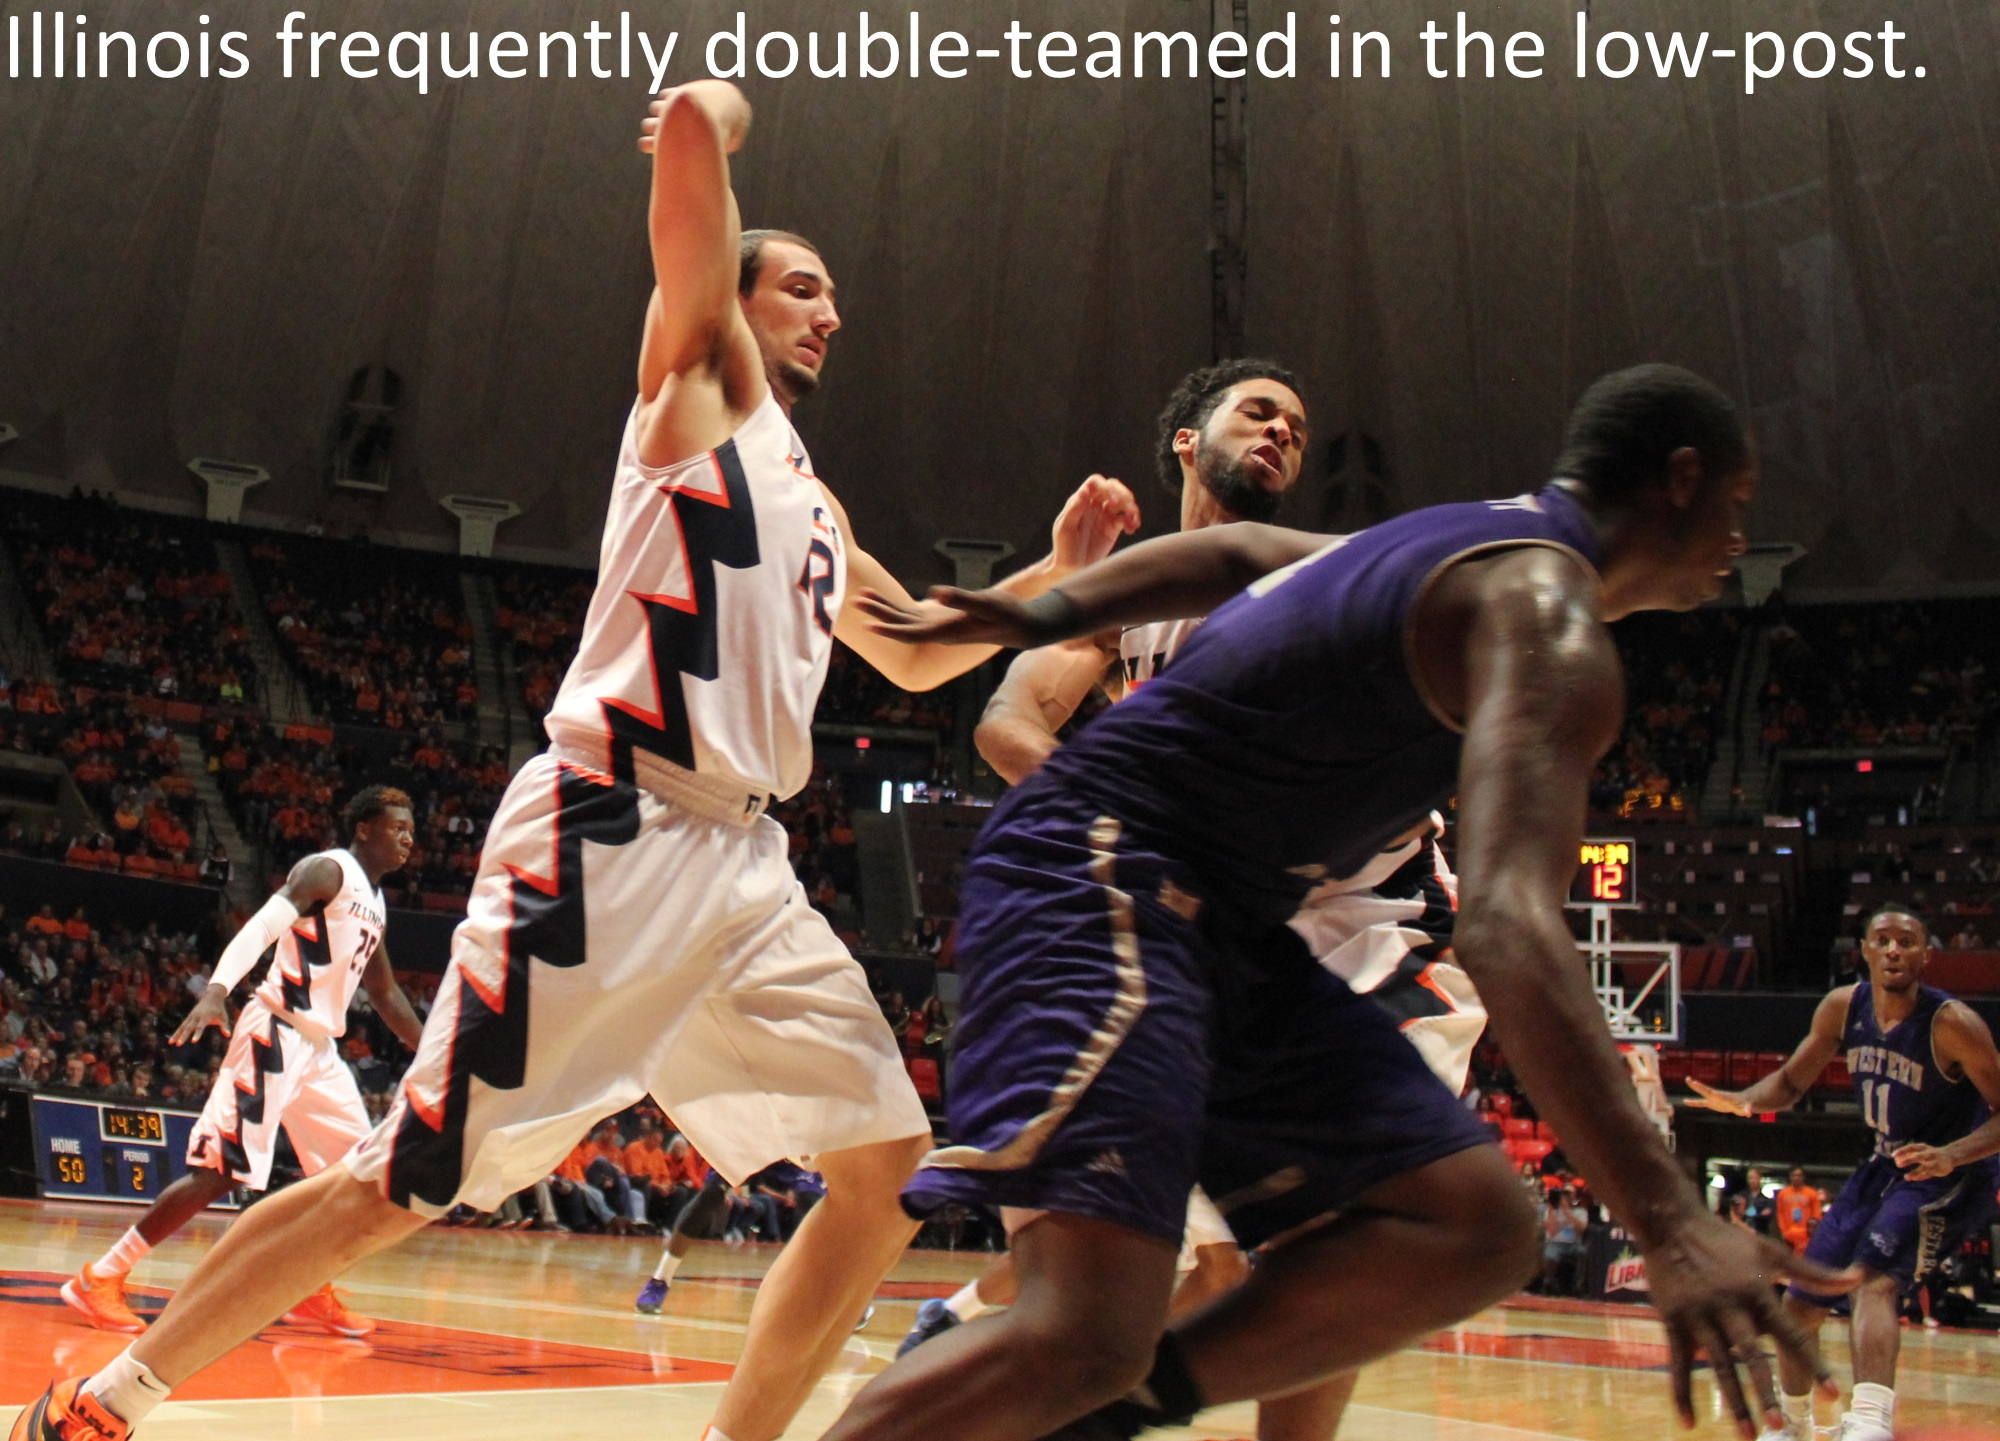 Illinois frequently double-teamed in the low-post